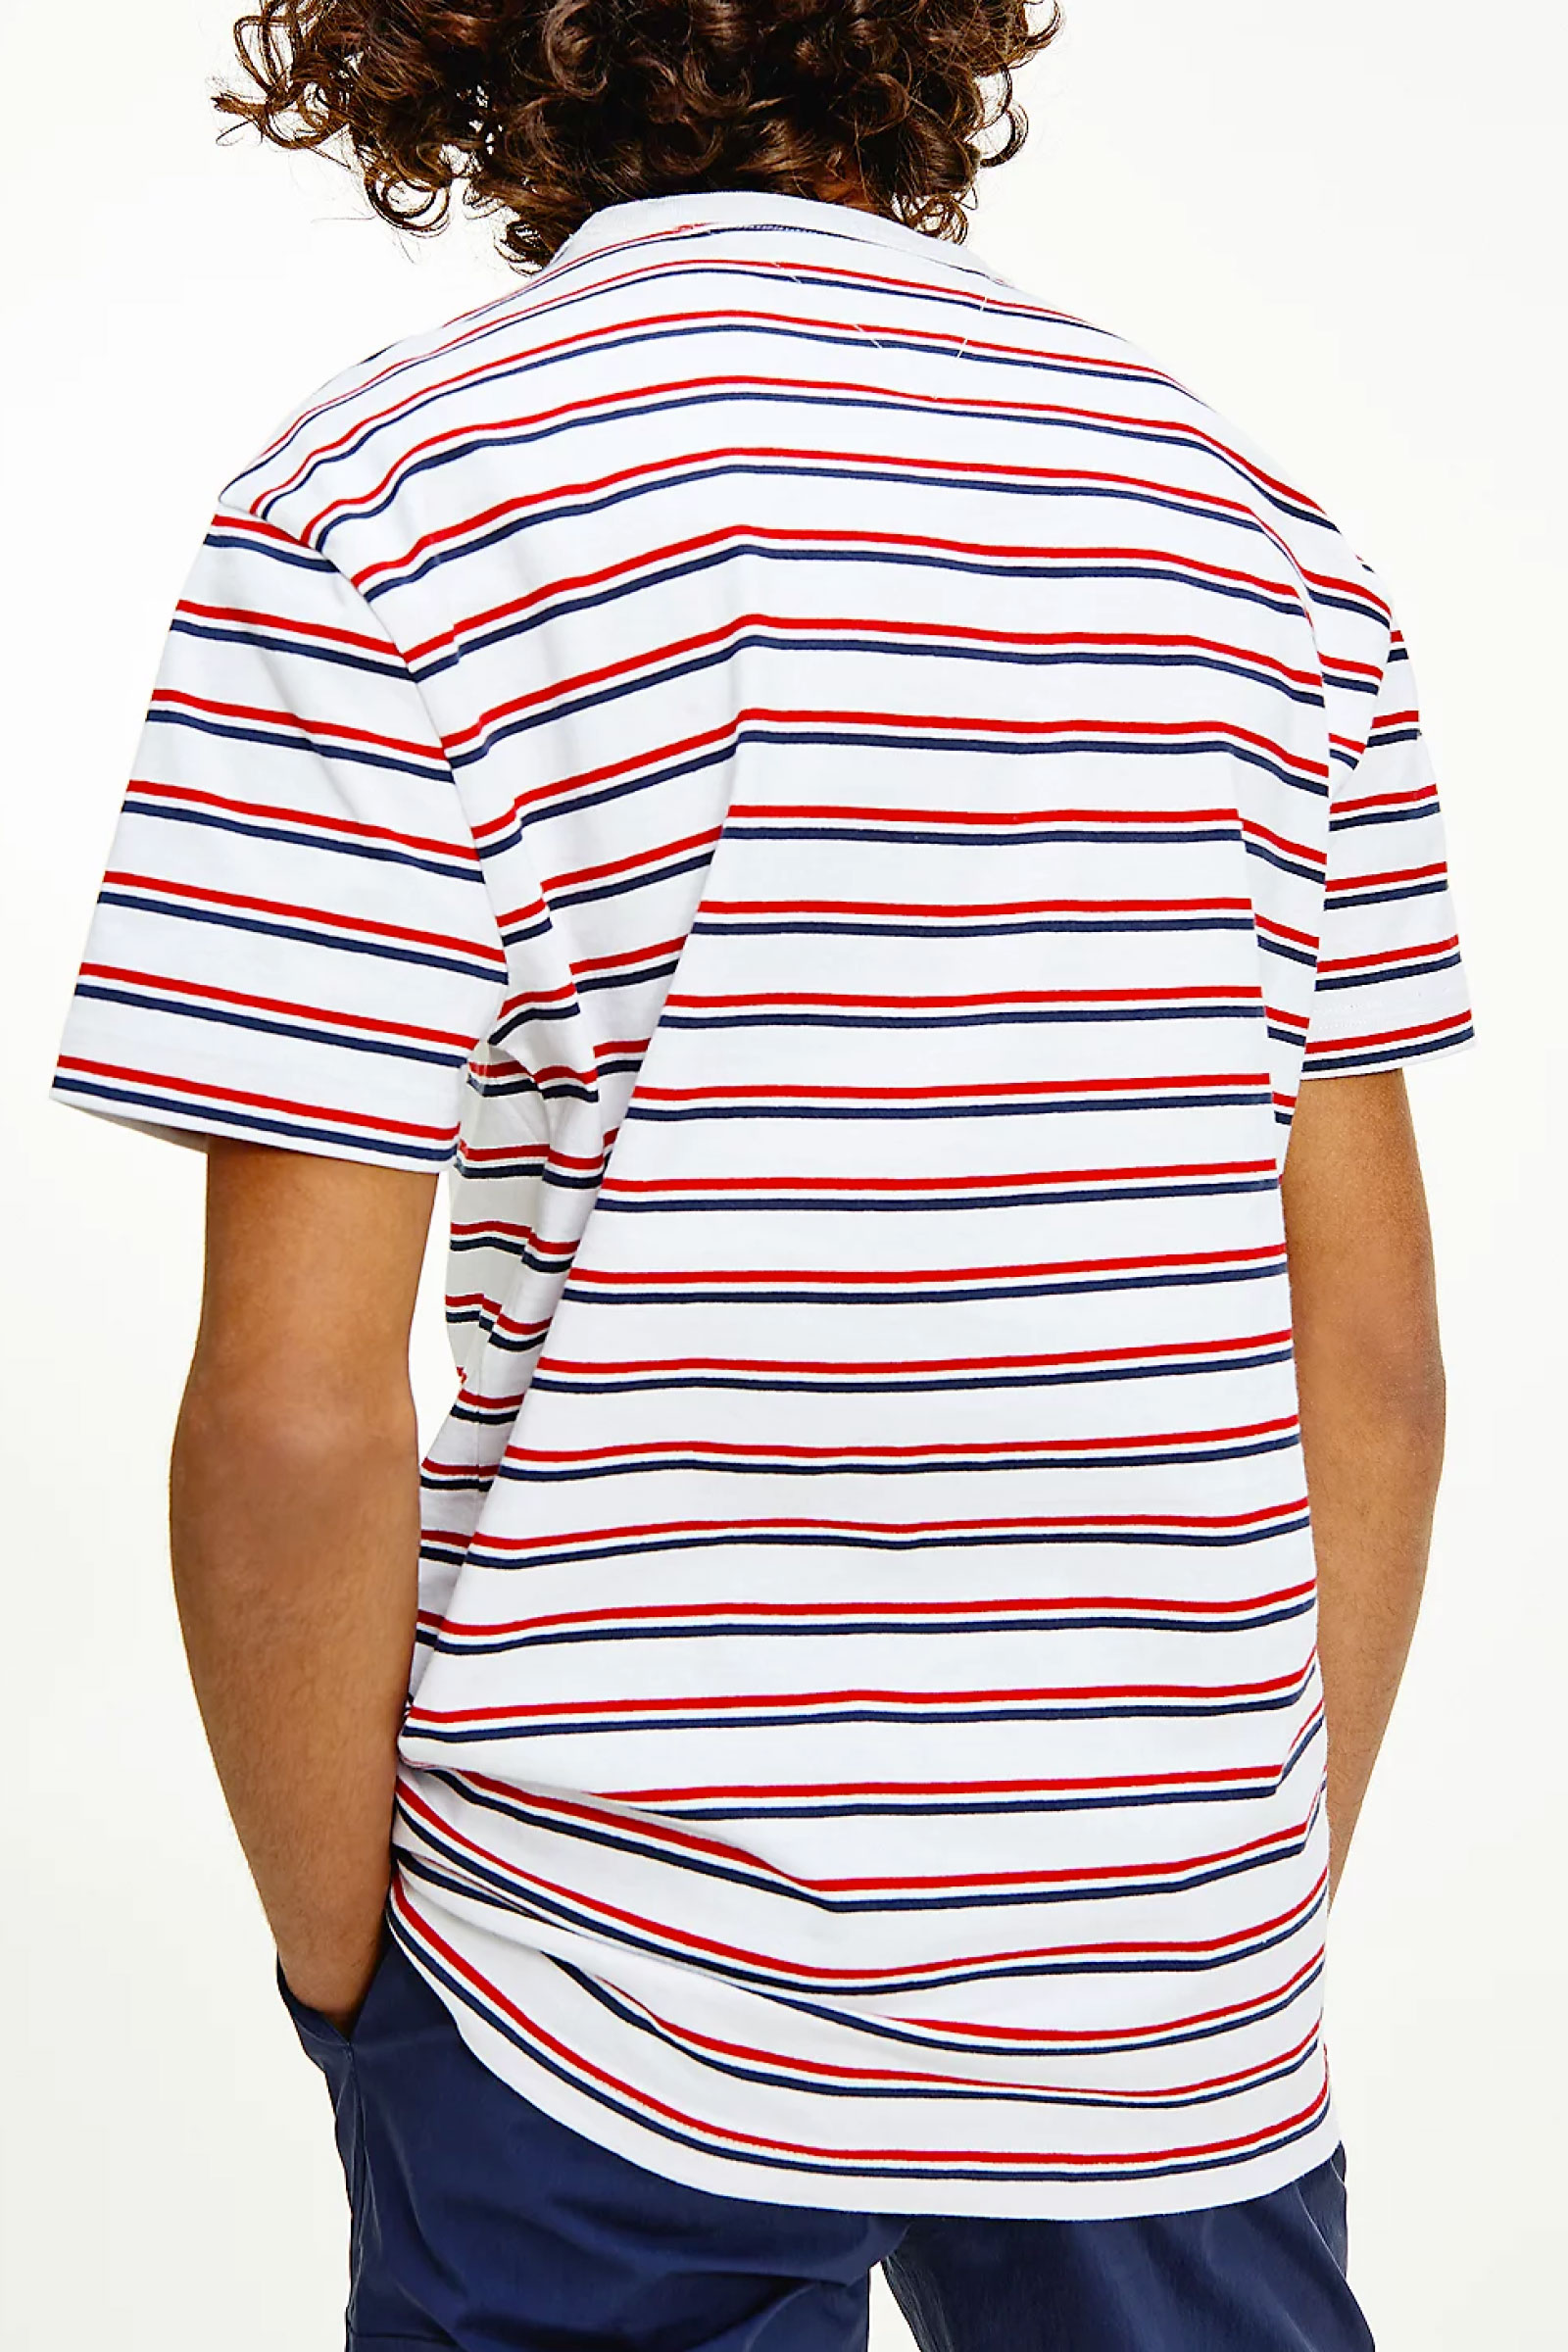 TOMMY JEANS Top Uomo TOMMY JEANS | T-Shirt | DM0DM10264XNL